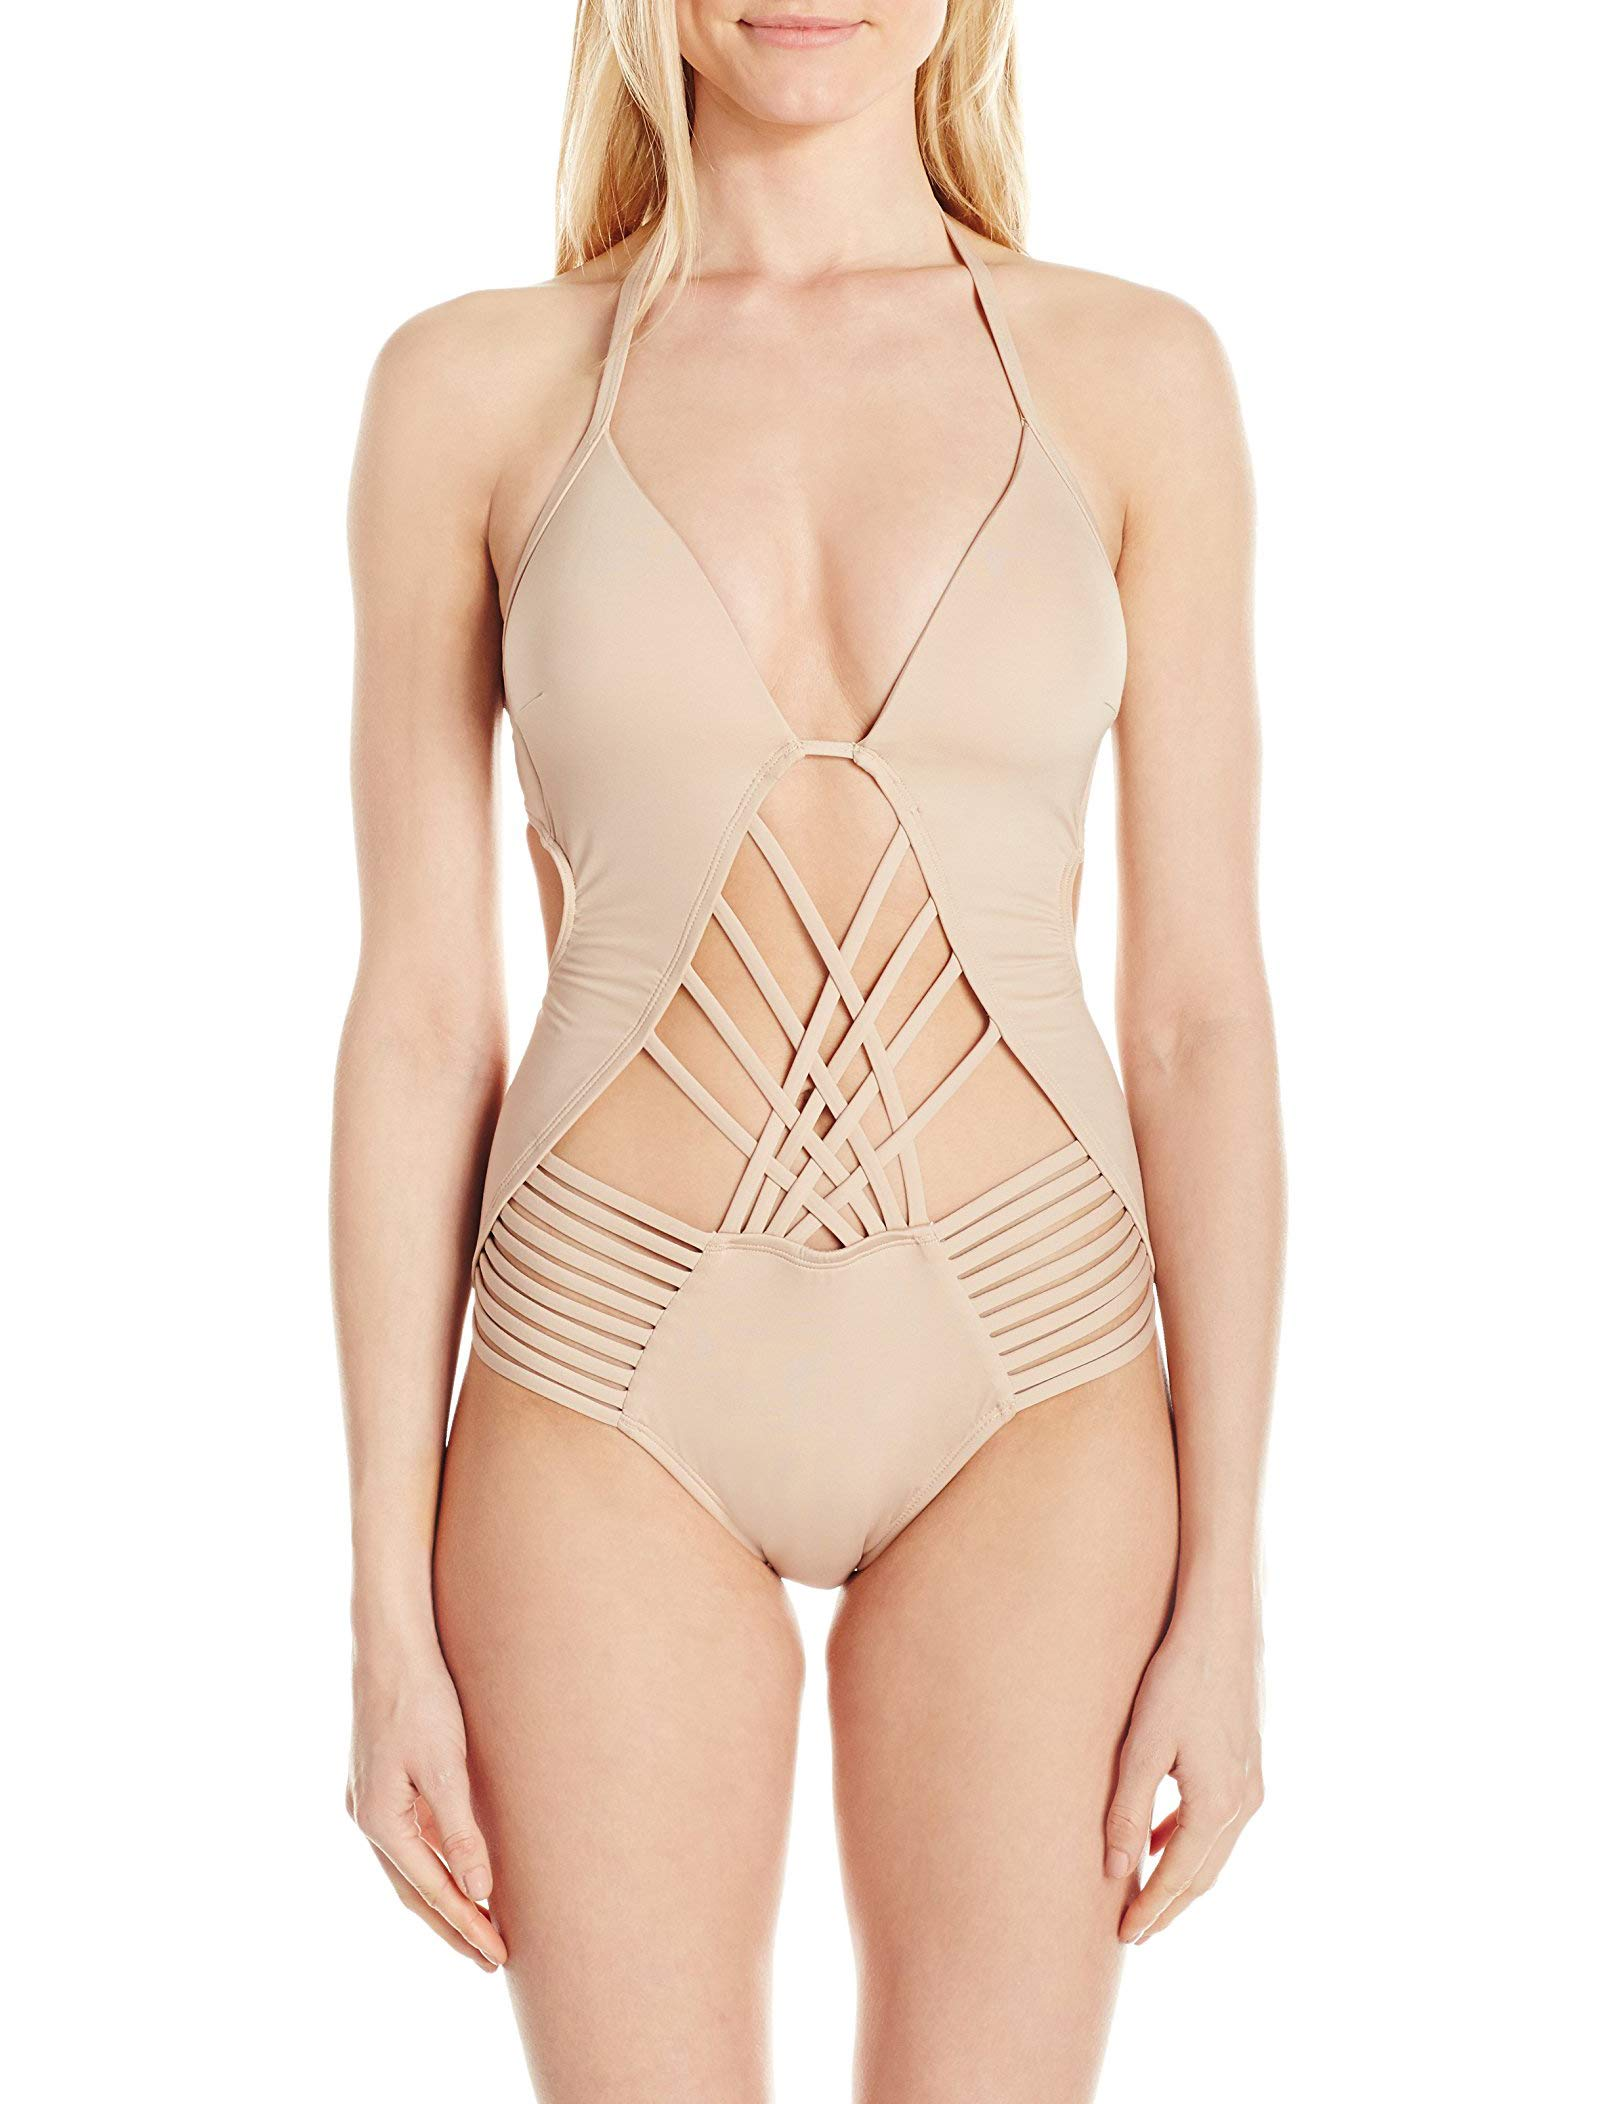 77f23fbdb250 We have more Kenneth Cole in Size S - Click Here Click to see all Womens  Swimwear in Size S